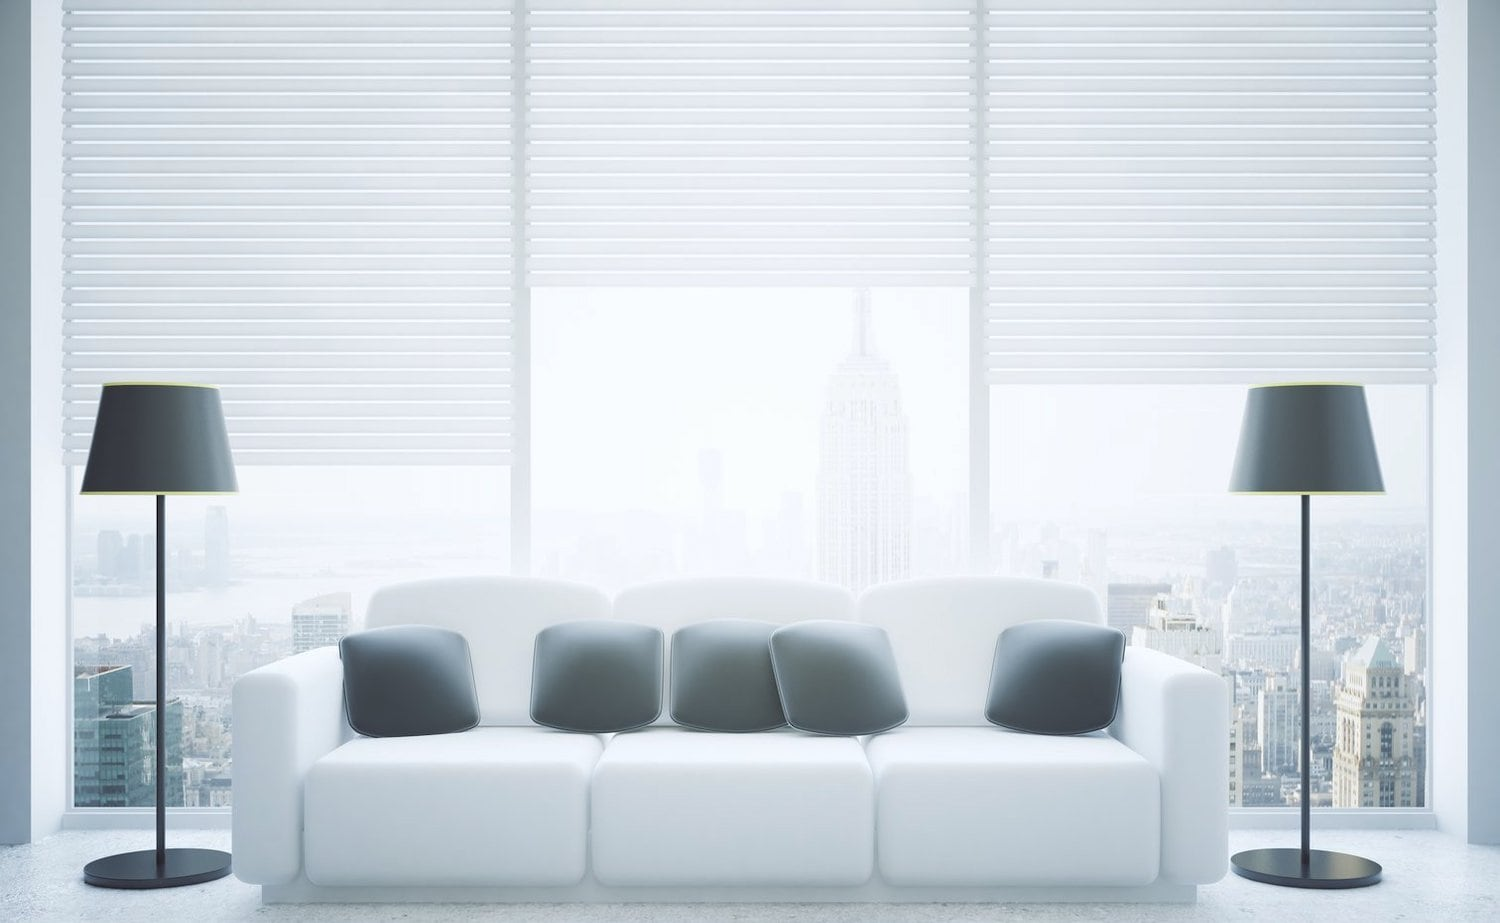 Teptron MOVE 2 Smart Motorized Blinds works with almost any type of shade